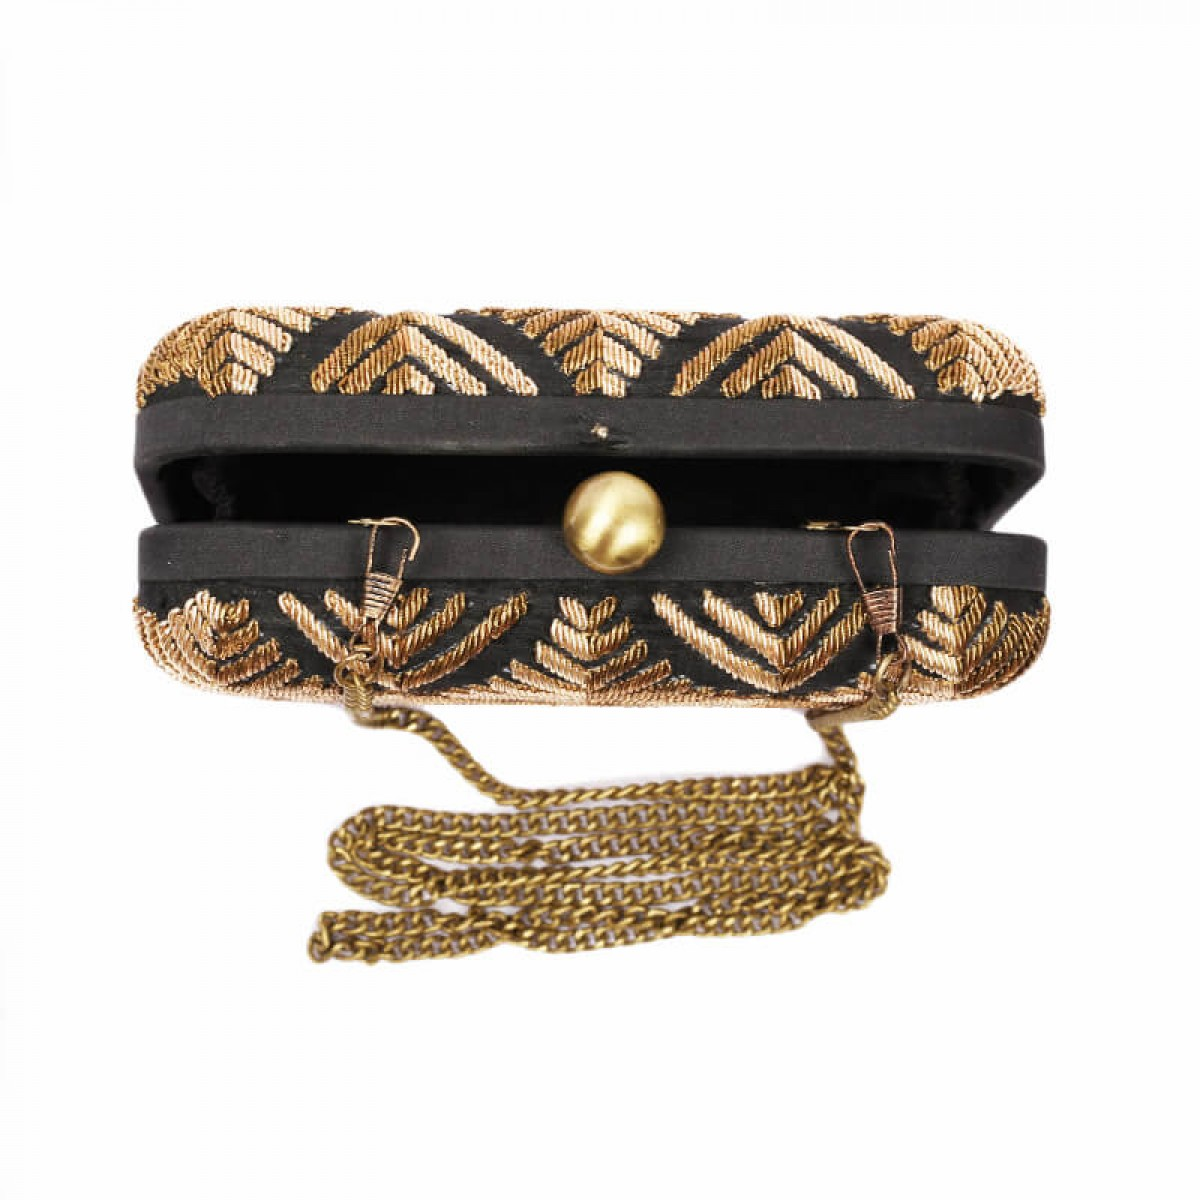 Evening Zardozi Embroidery Clutch Bag - Black